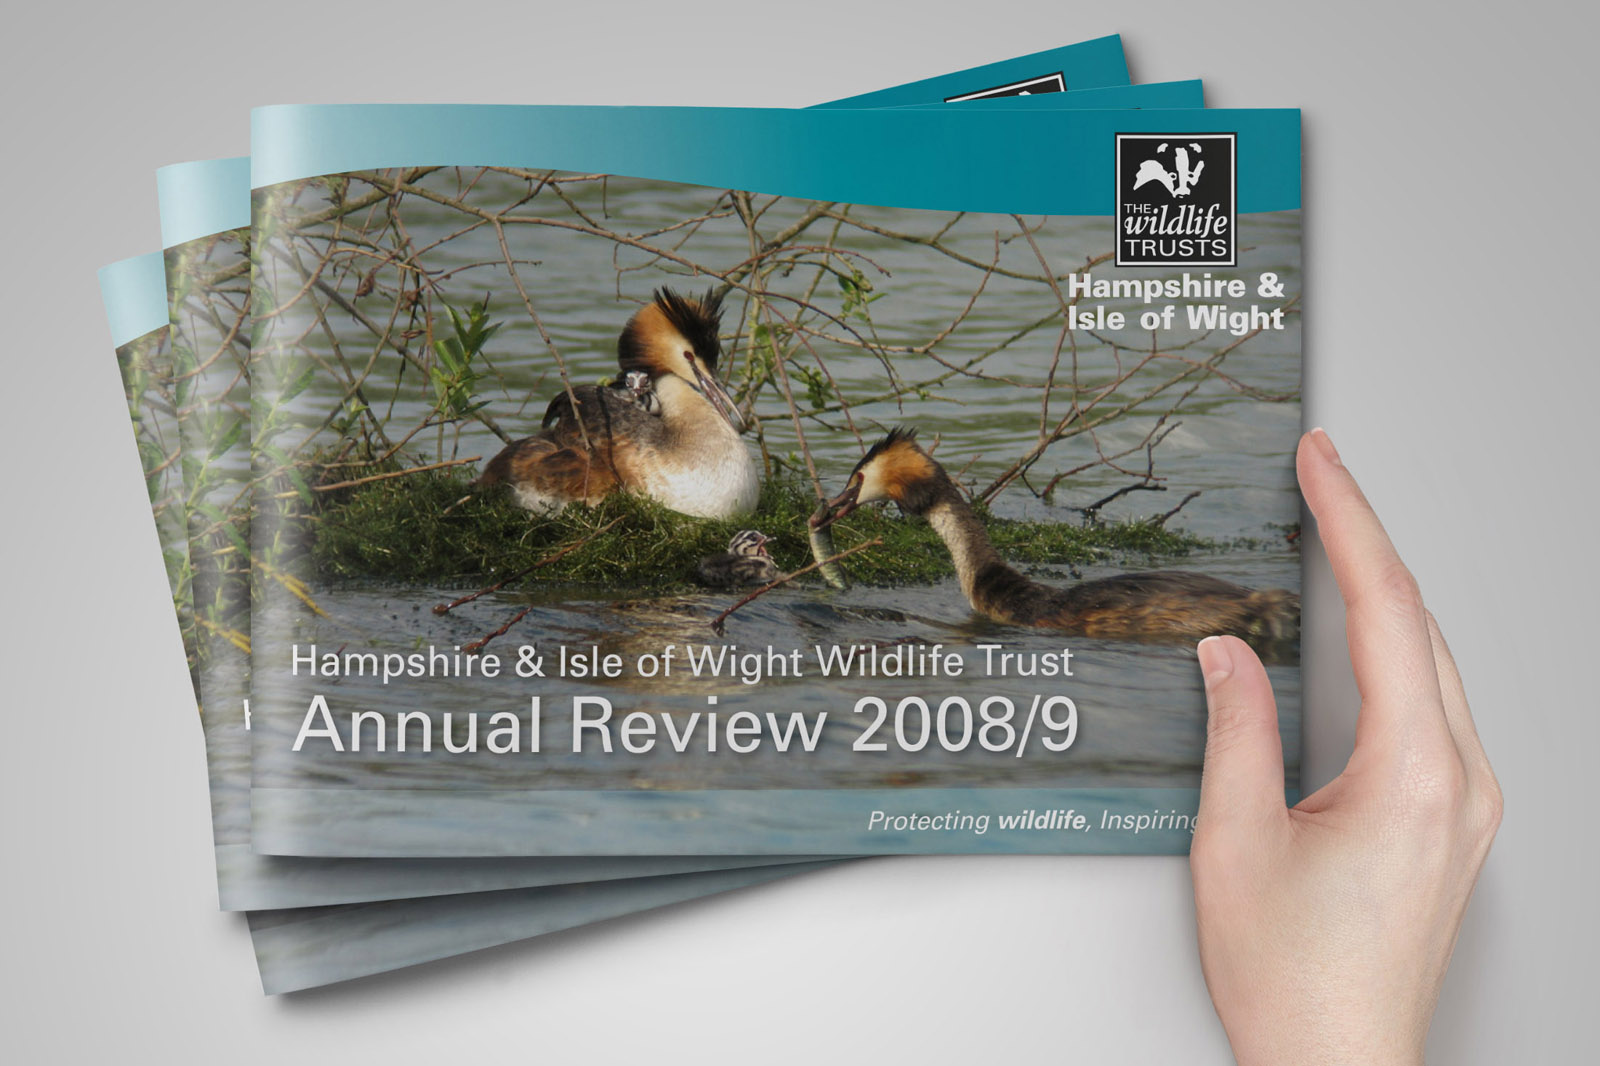 annual review artwork